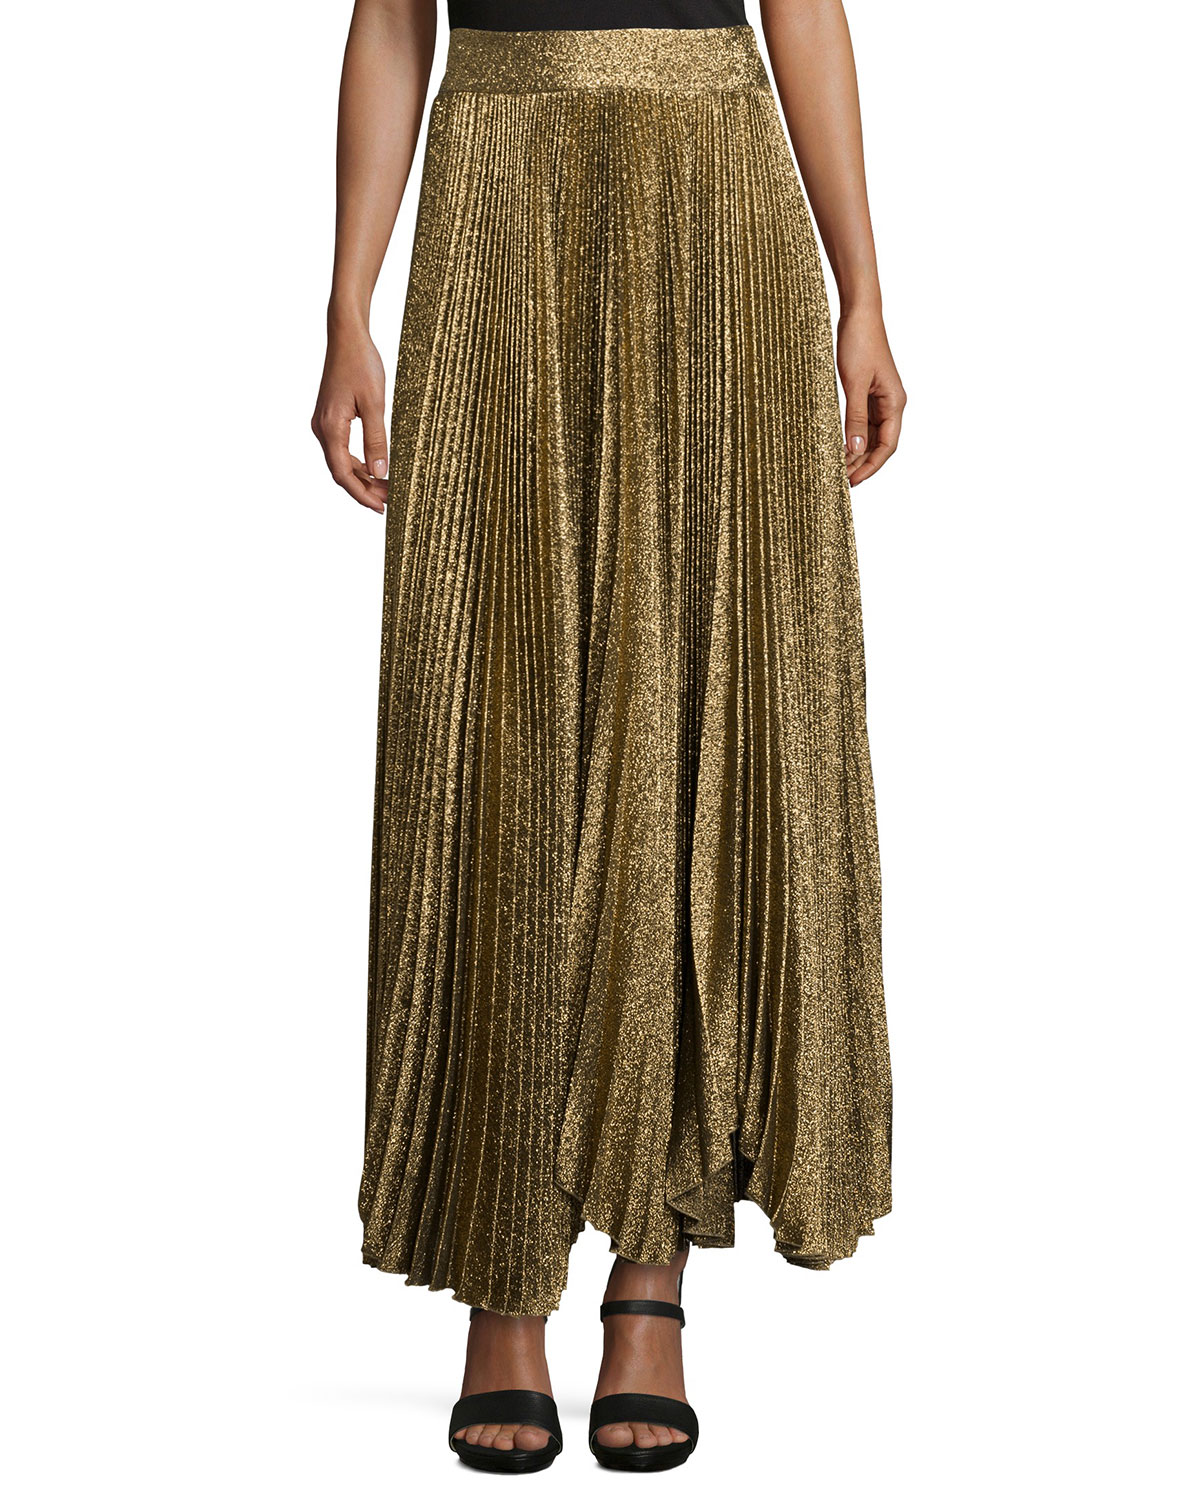 Katz Shimmery Pleated Maxi Skirt